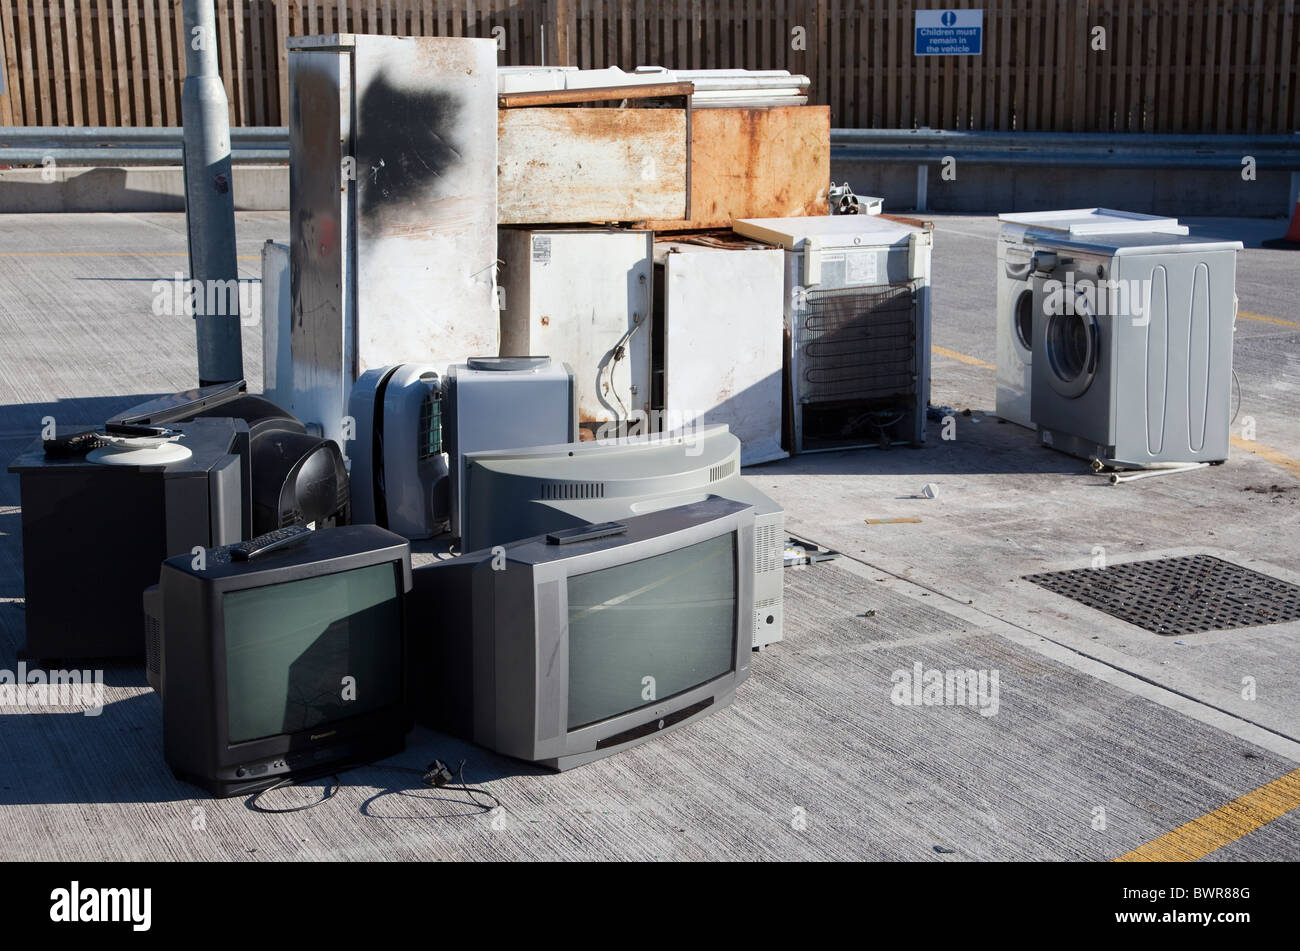 Televisions and white goods at recycling centre for disposal Wales UK - Stock Image